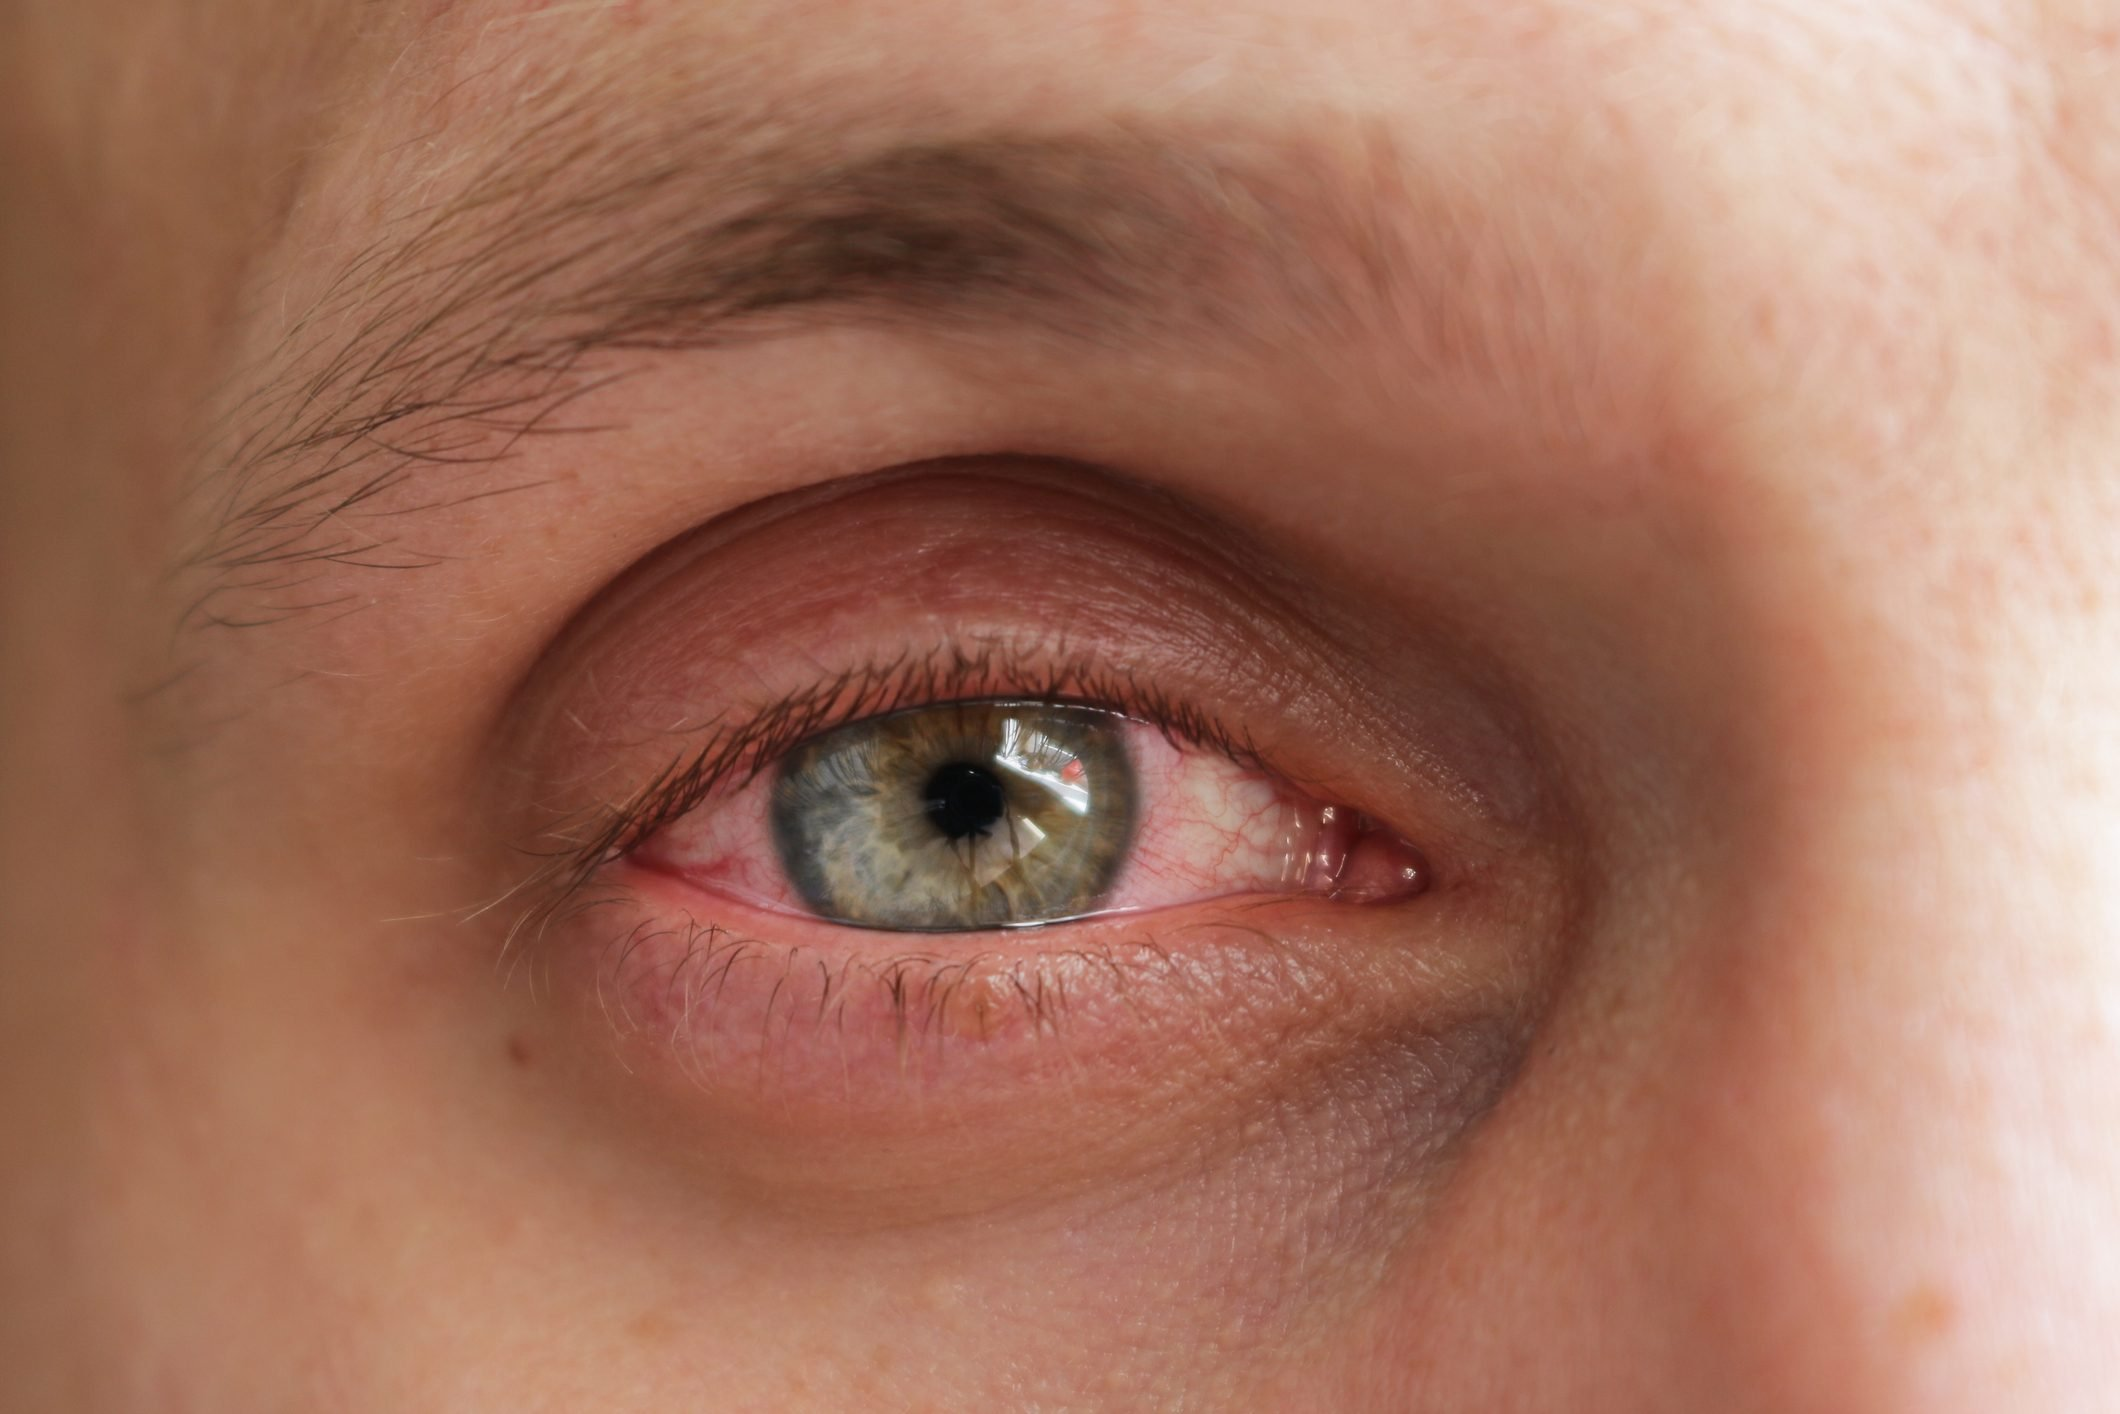 close up of man's eye with conjuntivitis